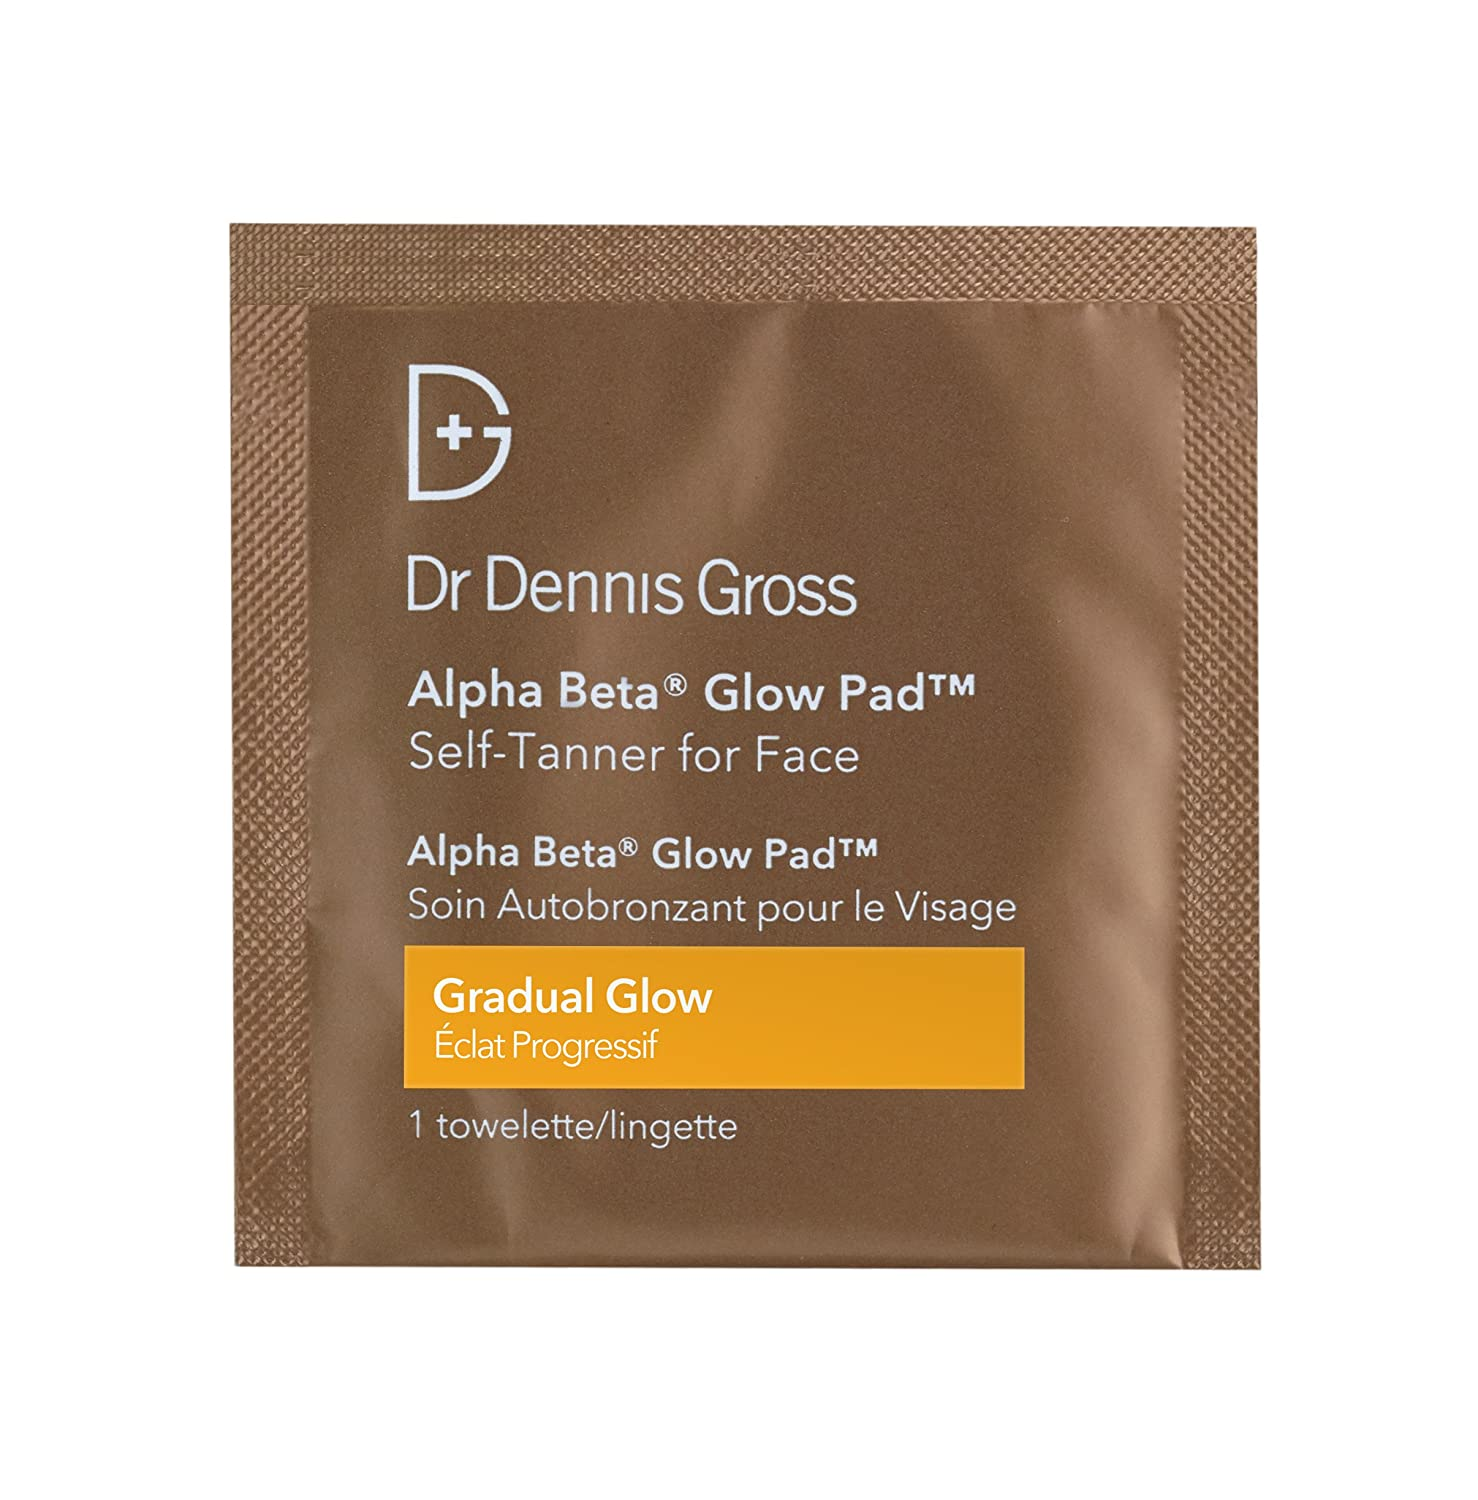 Dr. Dennis Gross Alpha Beta Glow Pad Gradual Glow Self Tanner for Face 20 Treatments, 1 Count Fab Products 66407